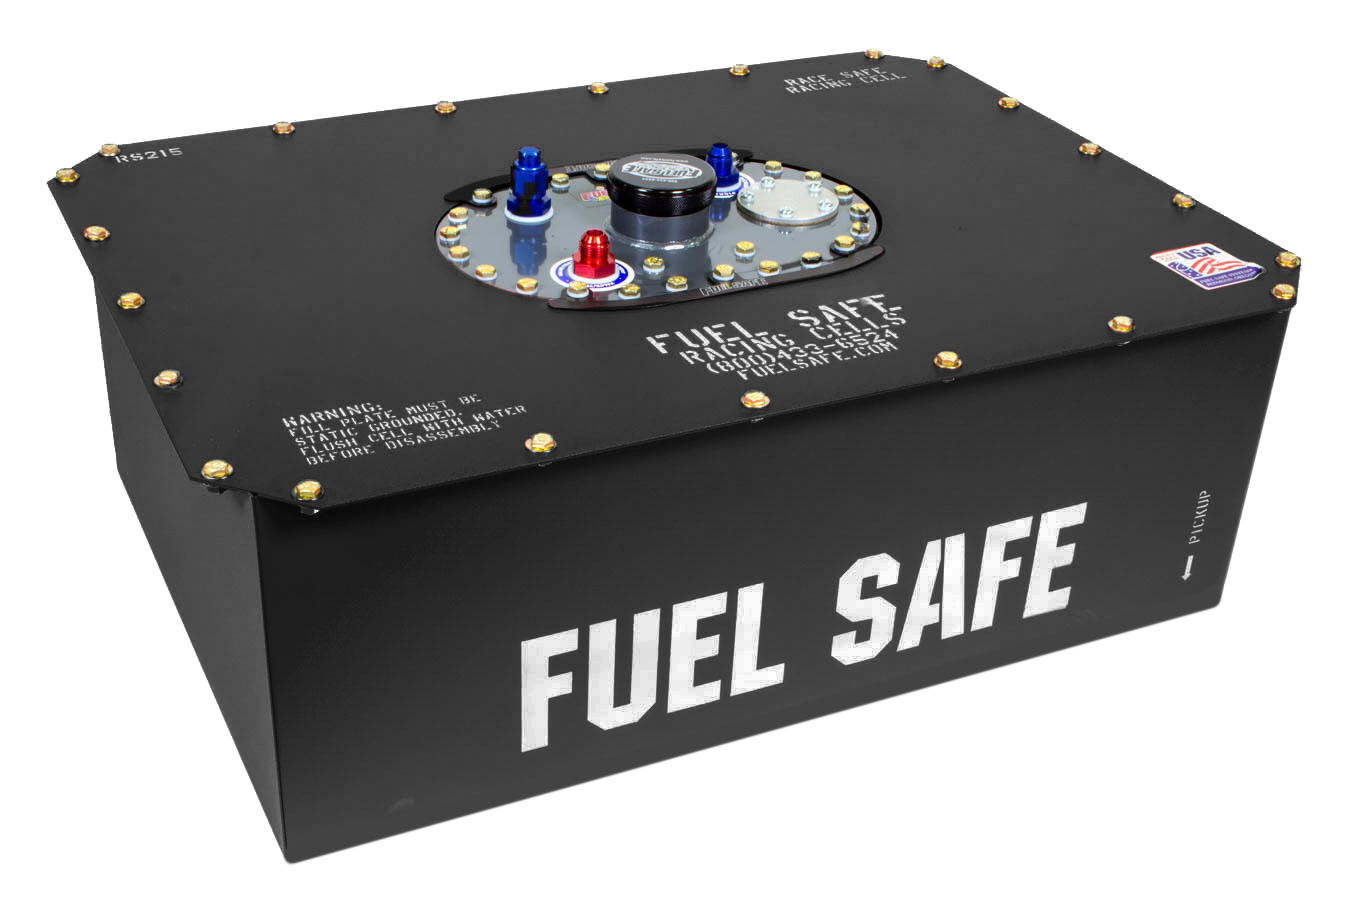 Fuel Safe 15 Gal Economy Cell 25.5x17.625x9.375